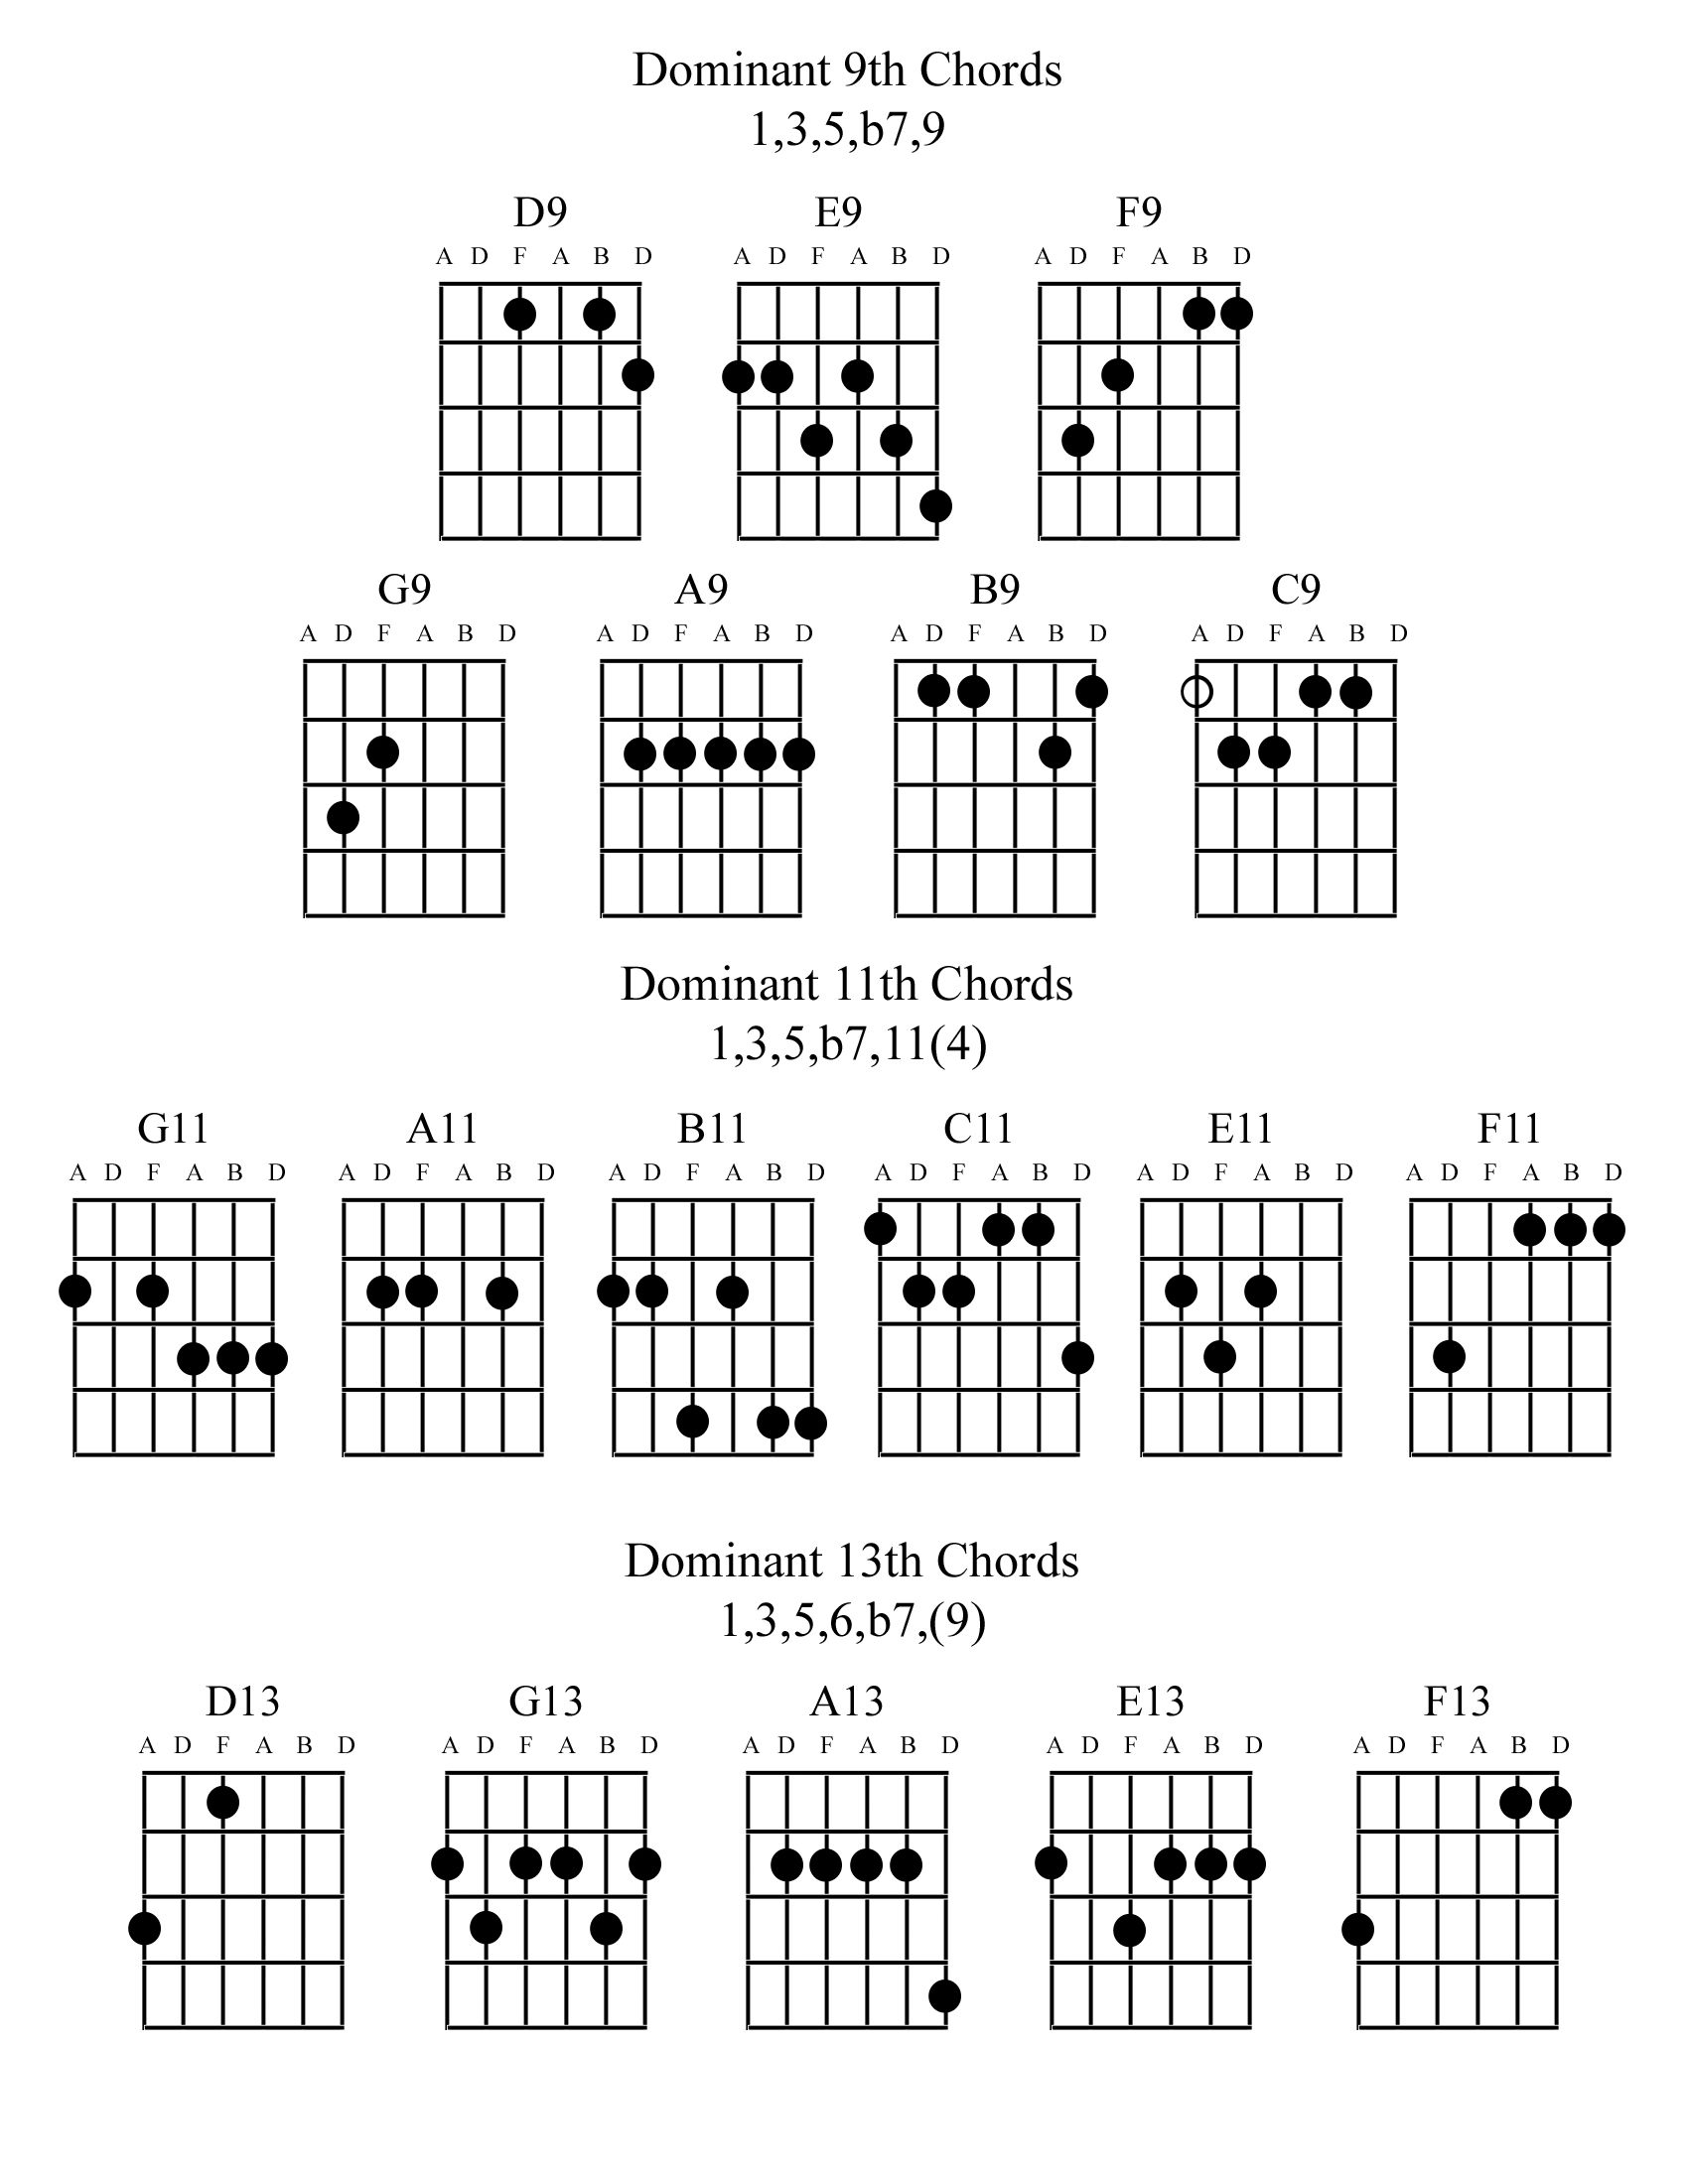 Dominant 9th, 11th and 13th chords